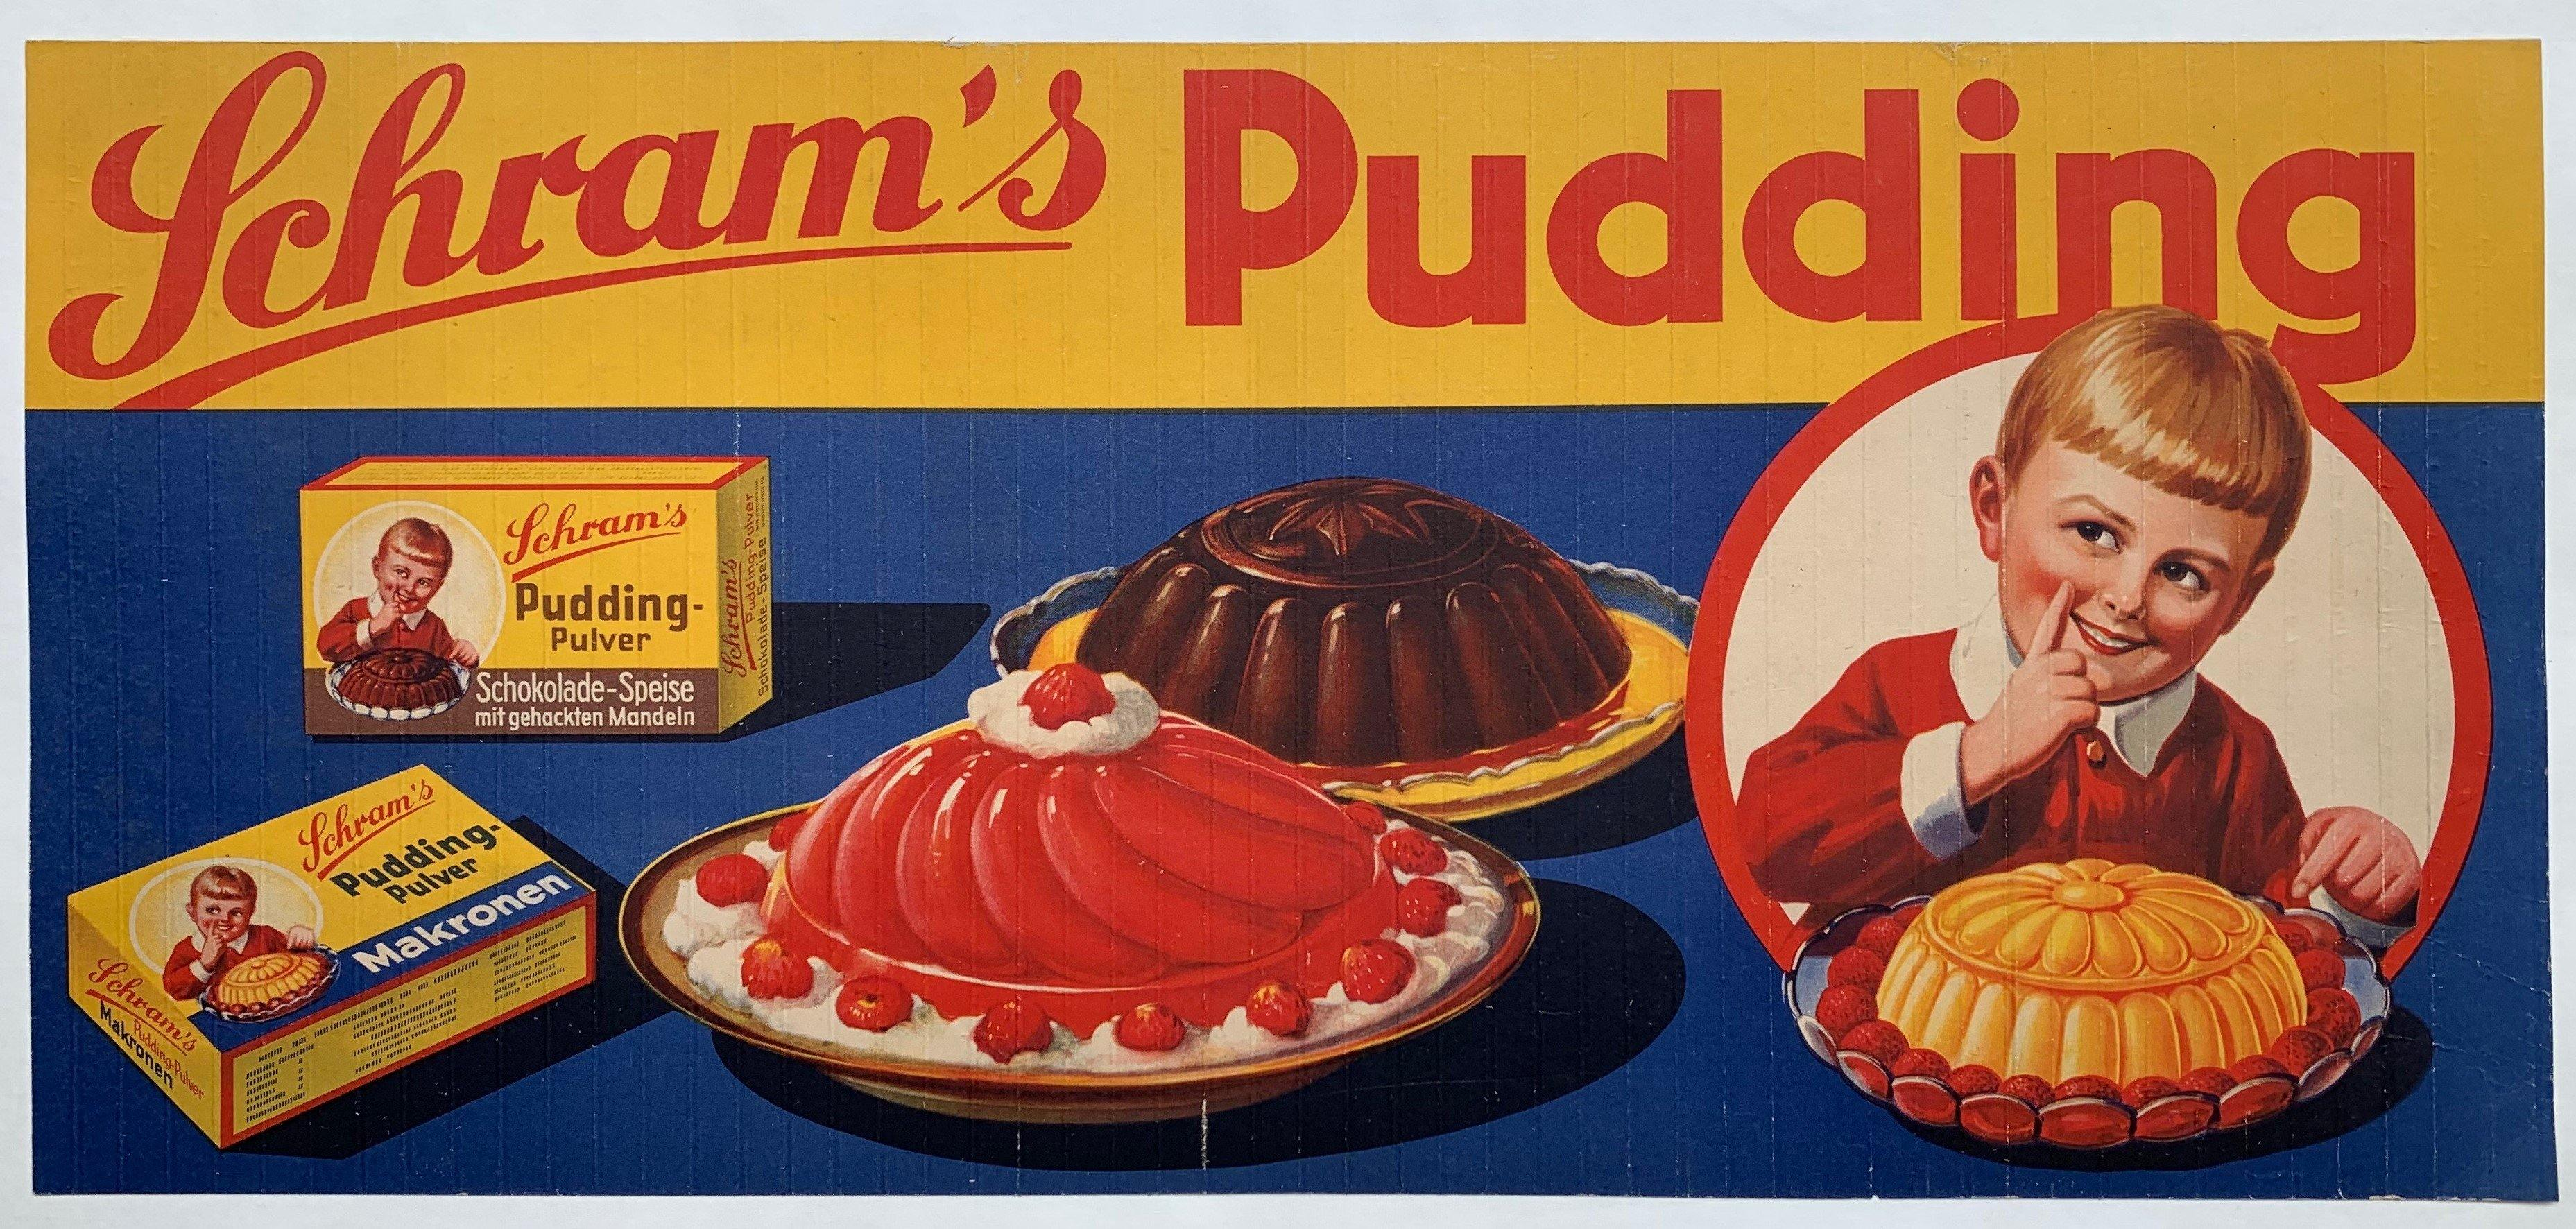 Schram's Pudding